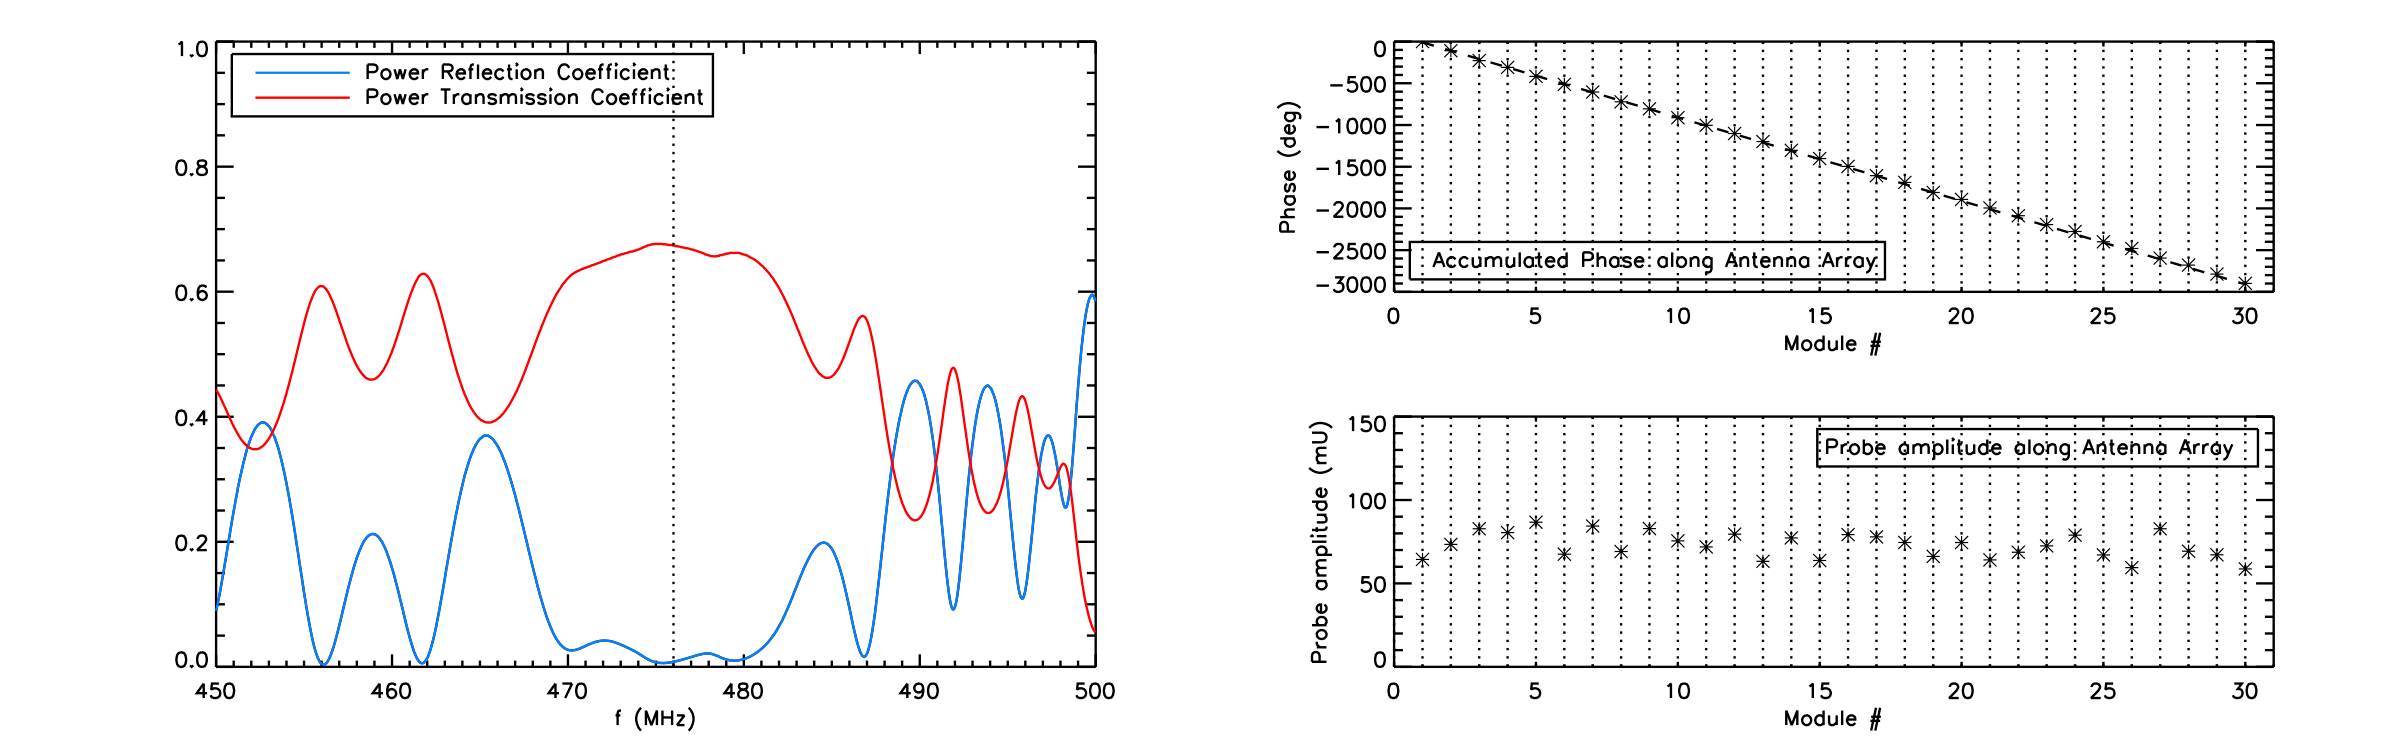 Left Panel: Power reflection and transmission coefficient measured in-vessel on the full 30-module antenna, prior to installation of the striplines. Right Panel: Accumulated phase and amplitude measured with a pick-up coil above each antenna module.